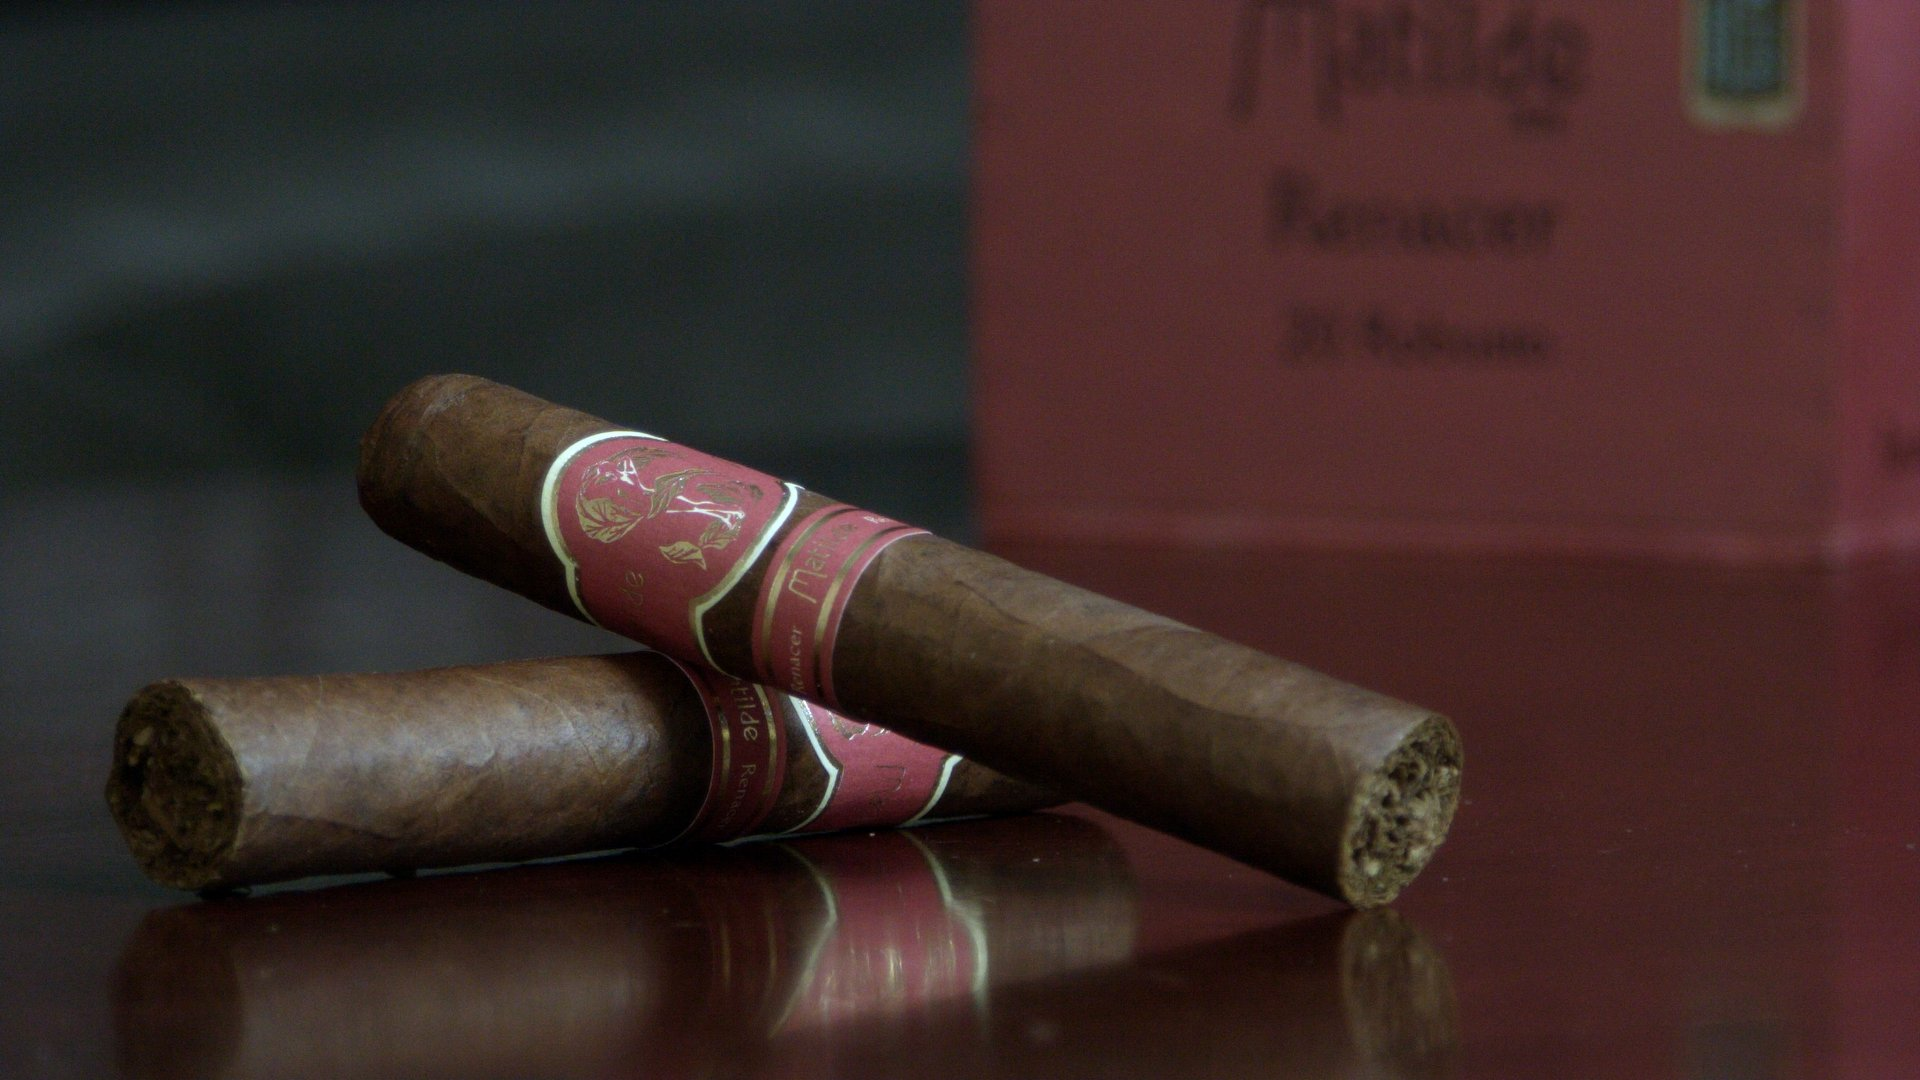 two matilde renacer robusto cigars on a table with the box as a backdrop